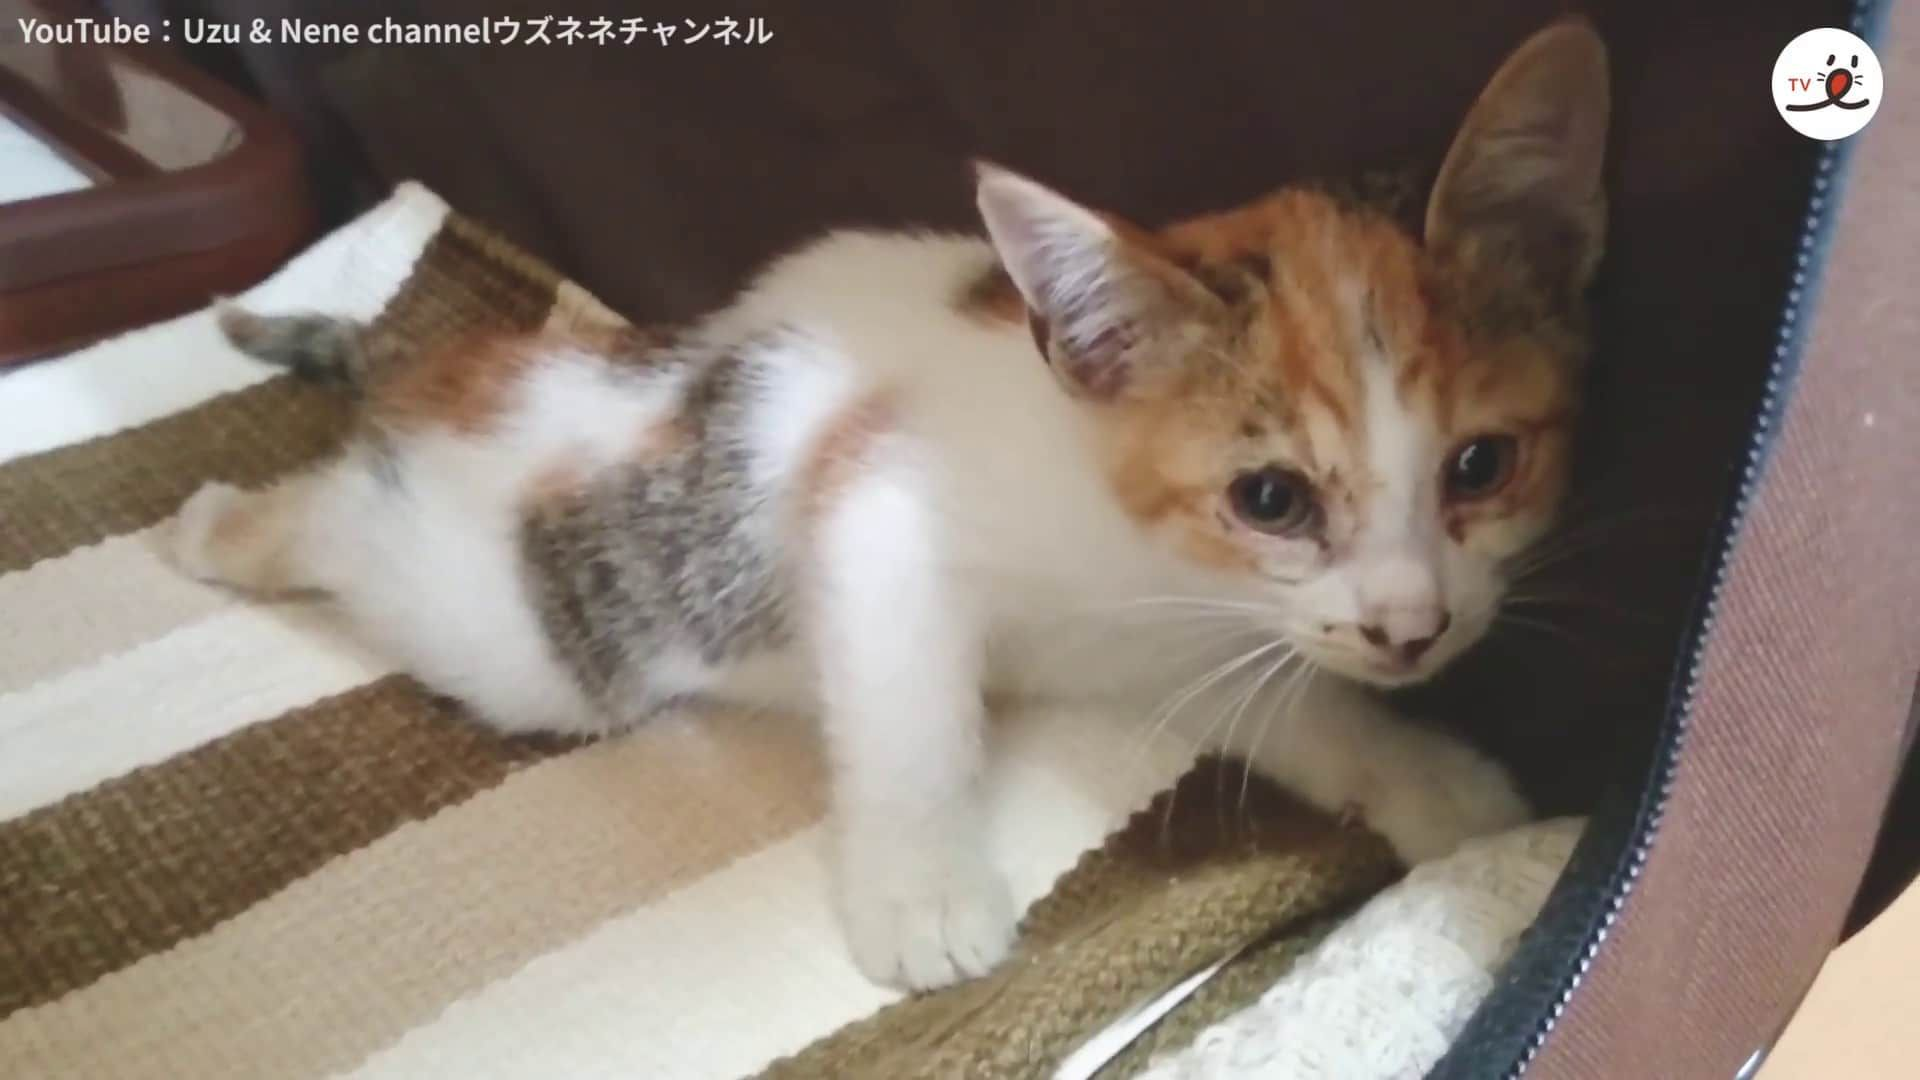 A Kitten Fell From The Bridge And Broke Her Leg She Could Not Move Perfectly Limping Its Right Hind Limb Nene Was Found By A Kind Hea Kitten Broken Leg Fall